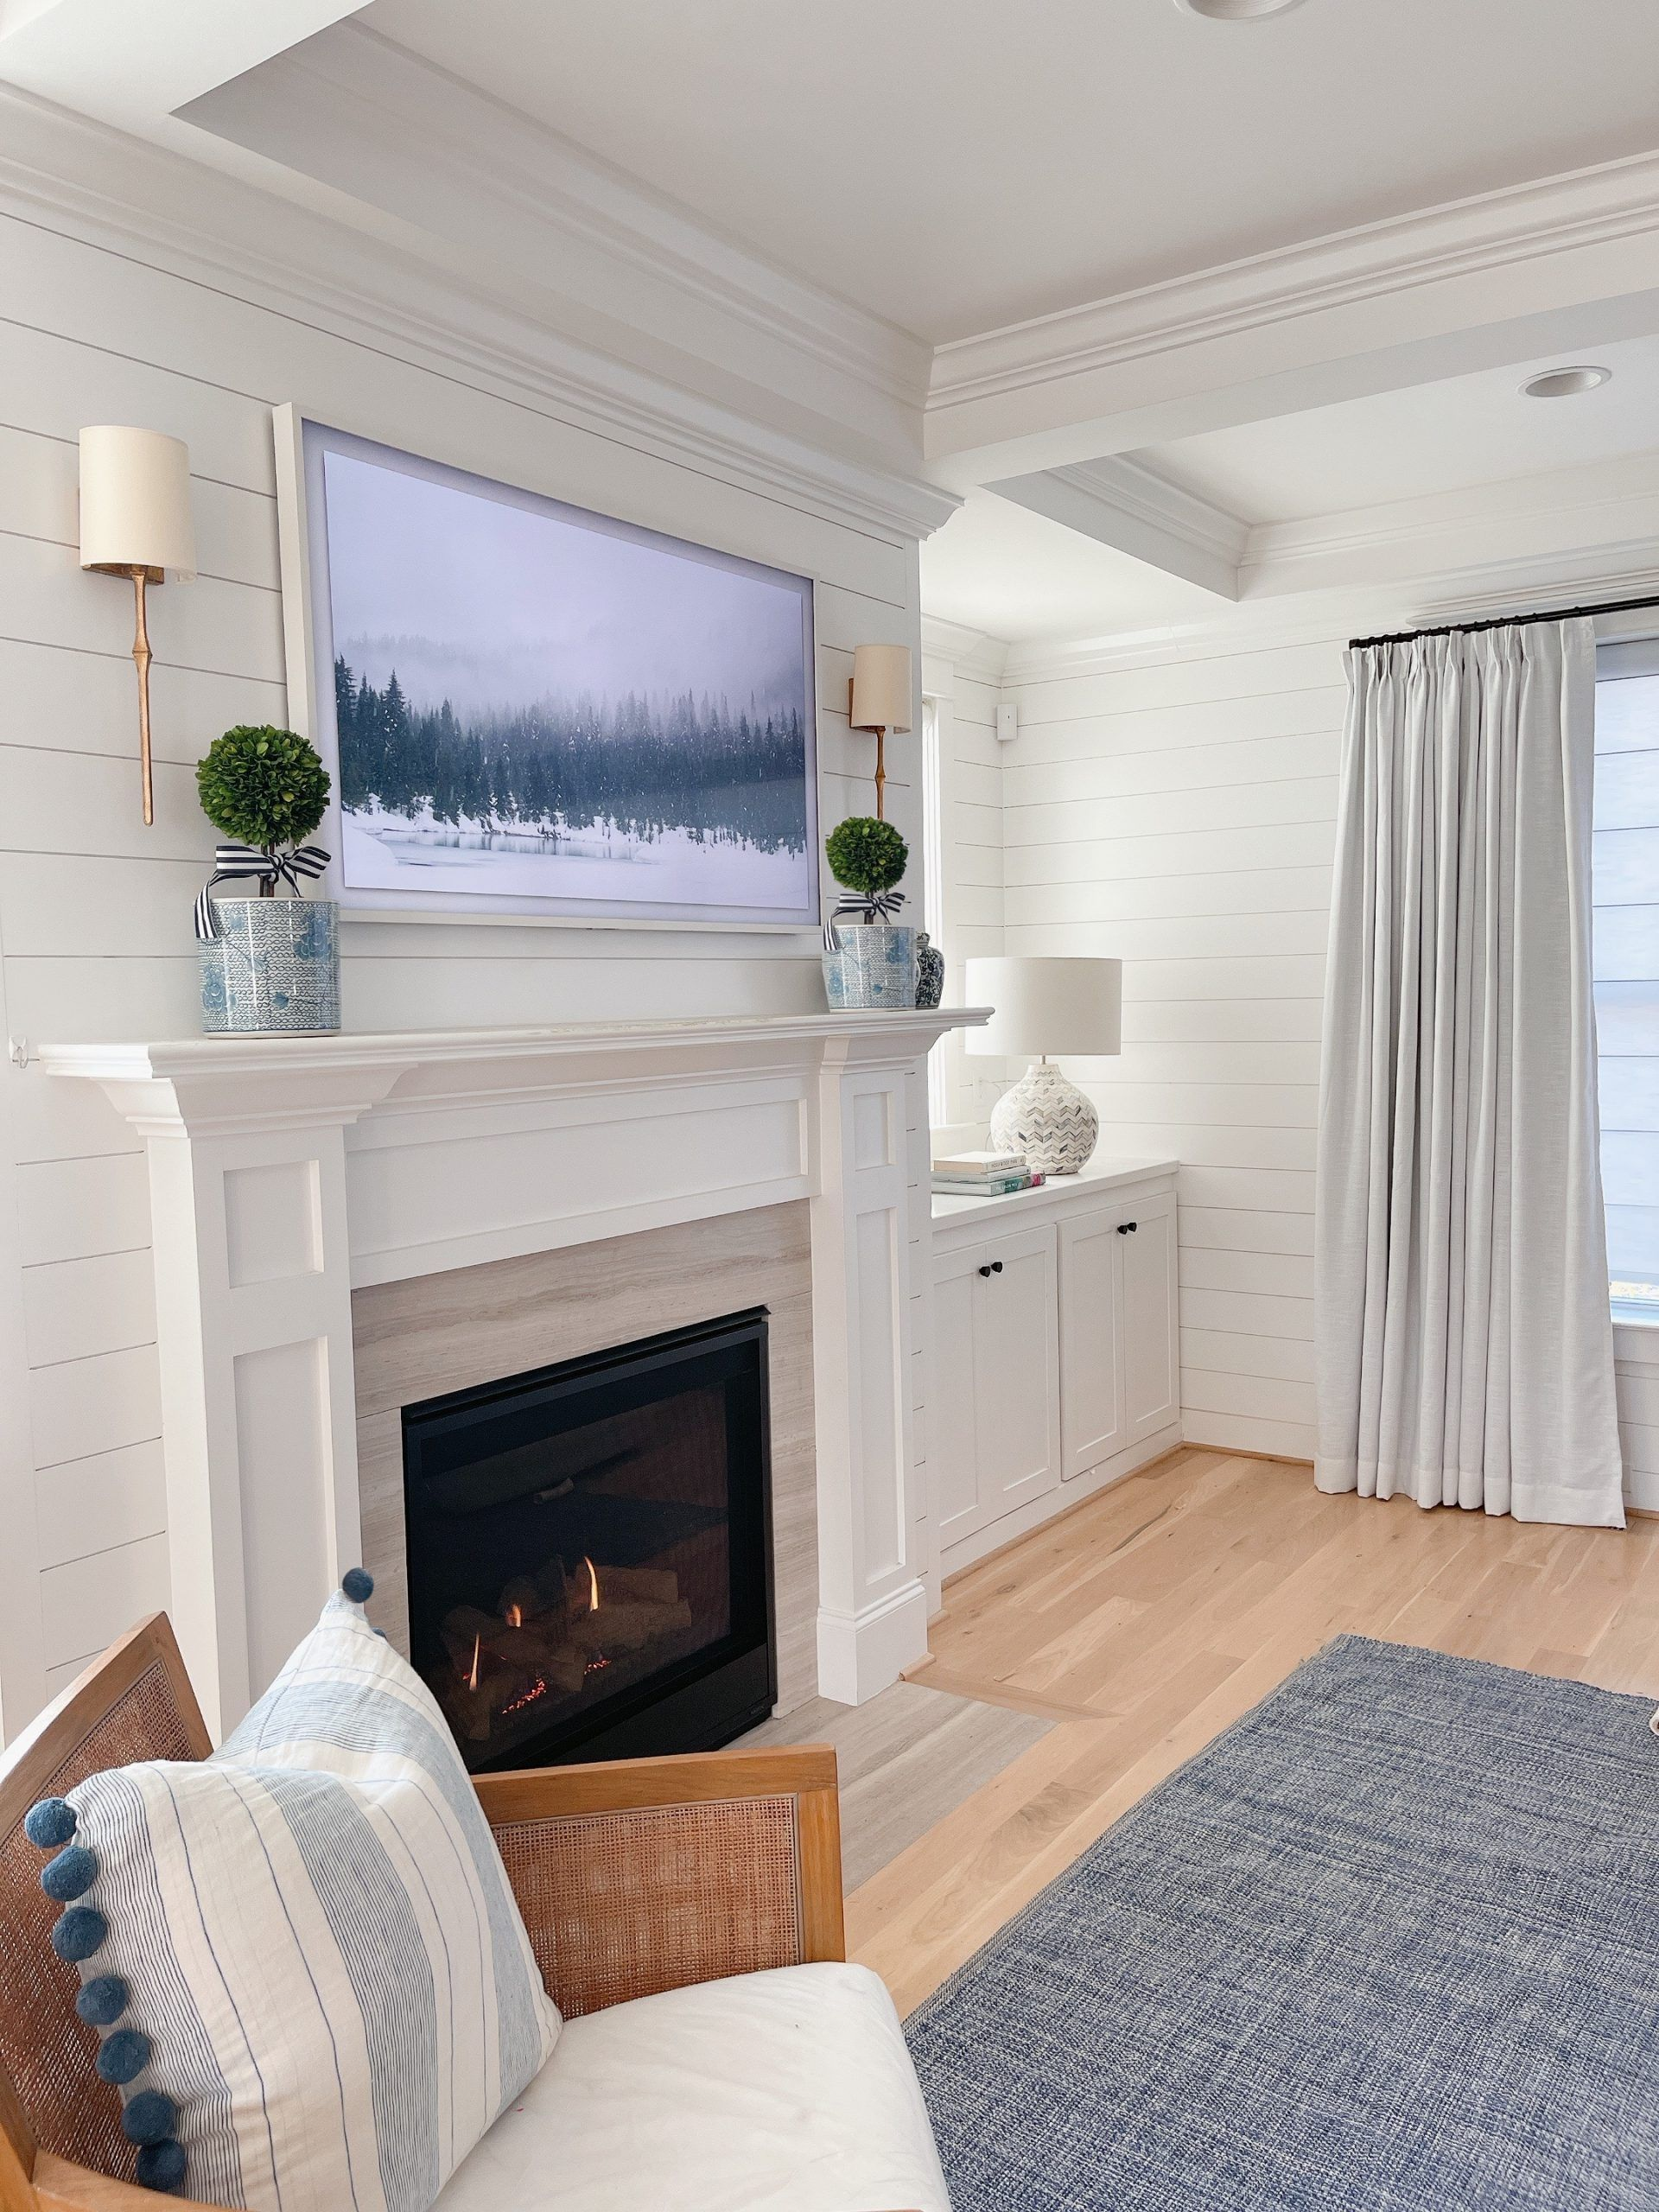 Mantel Decor With A Tv 6 Ways To Pull It Off In 2021 White Home Decor Fireplace Mantle Decor Living Room White